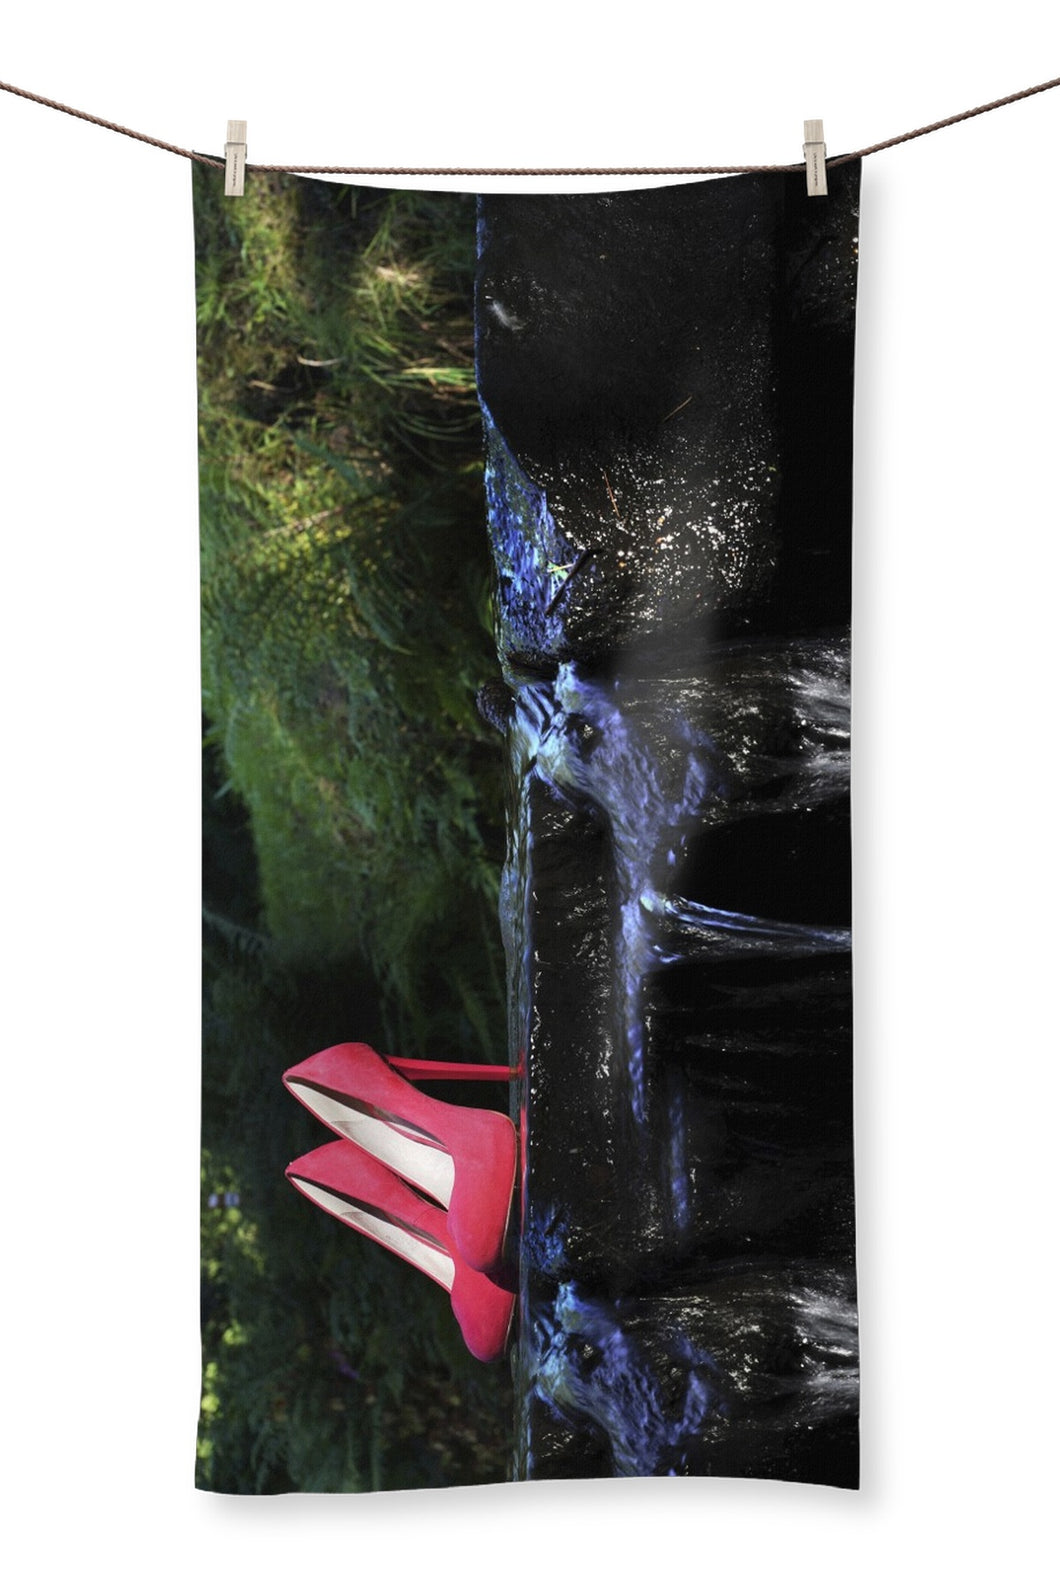 Towel showing pair of red ladies high heeled shoes placed on a rock in a river